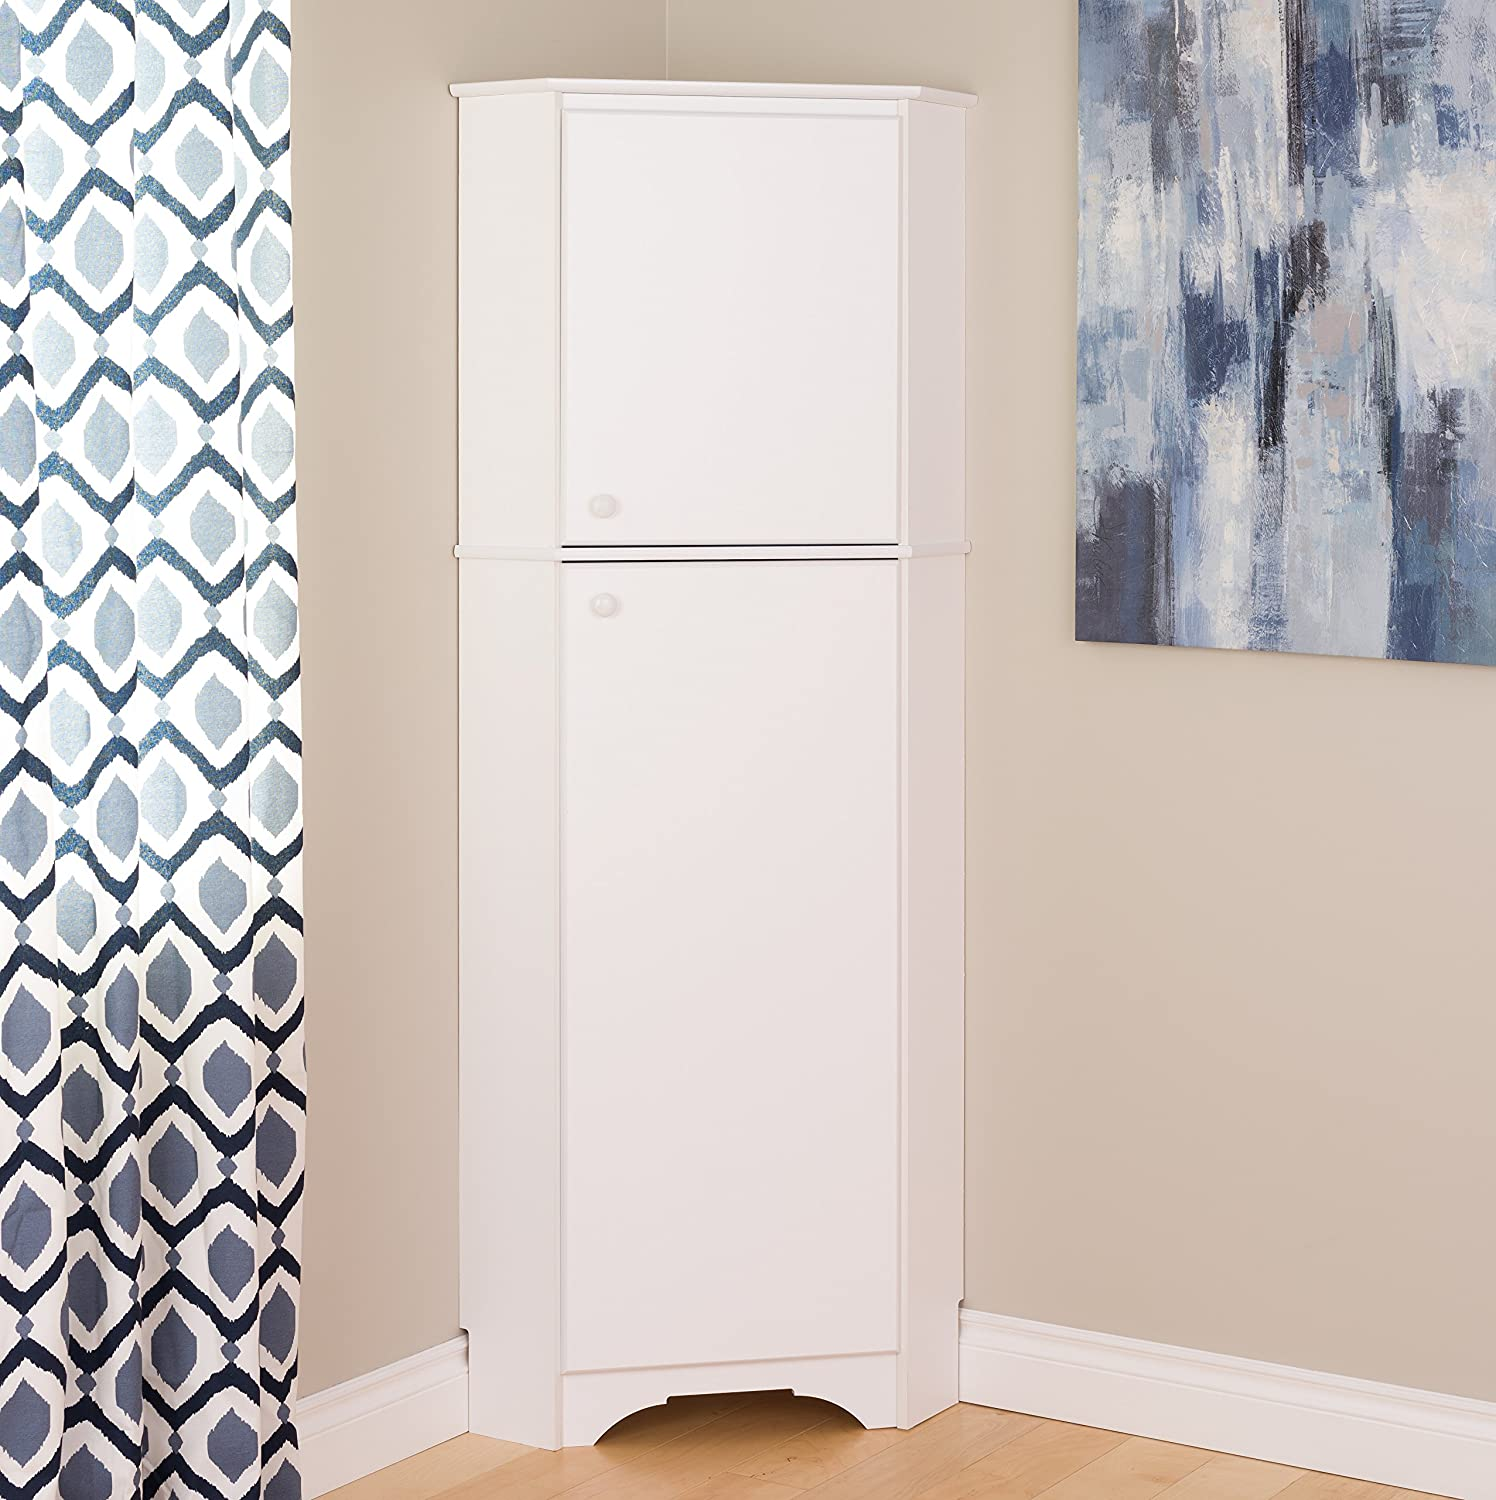 doors paint and for it hgtv interior black with tips design s antique bold suite master decorating tall inspiration blog